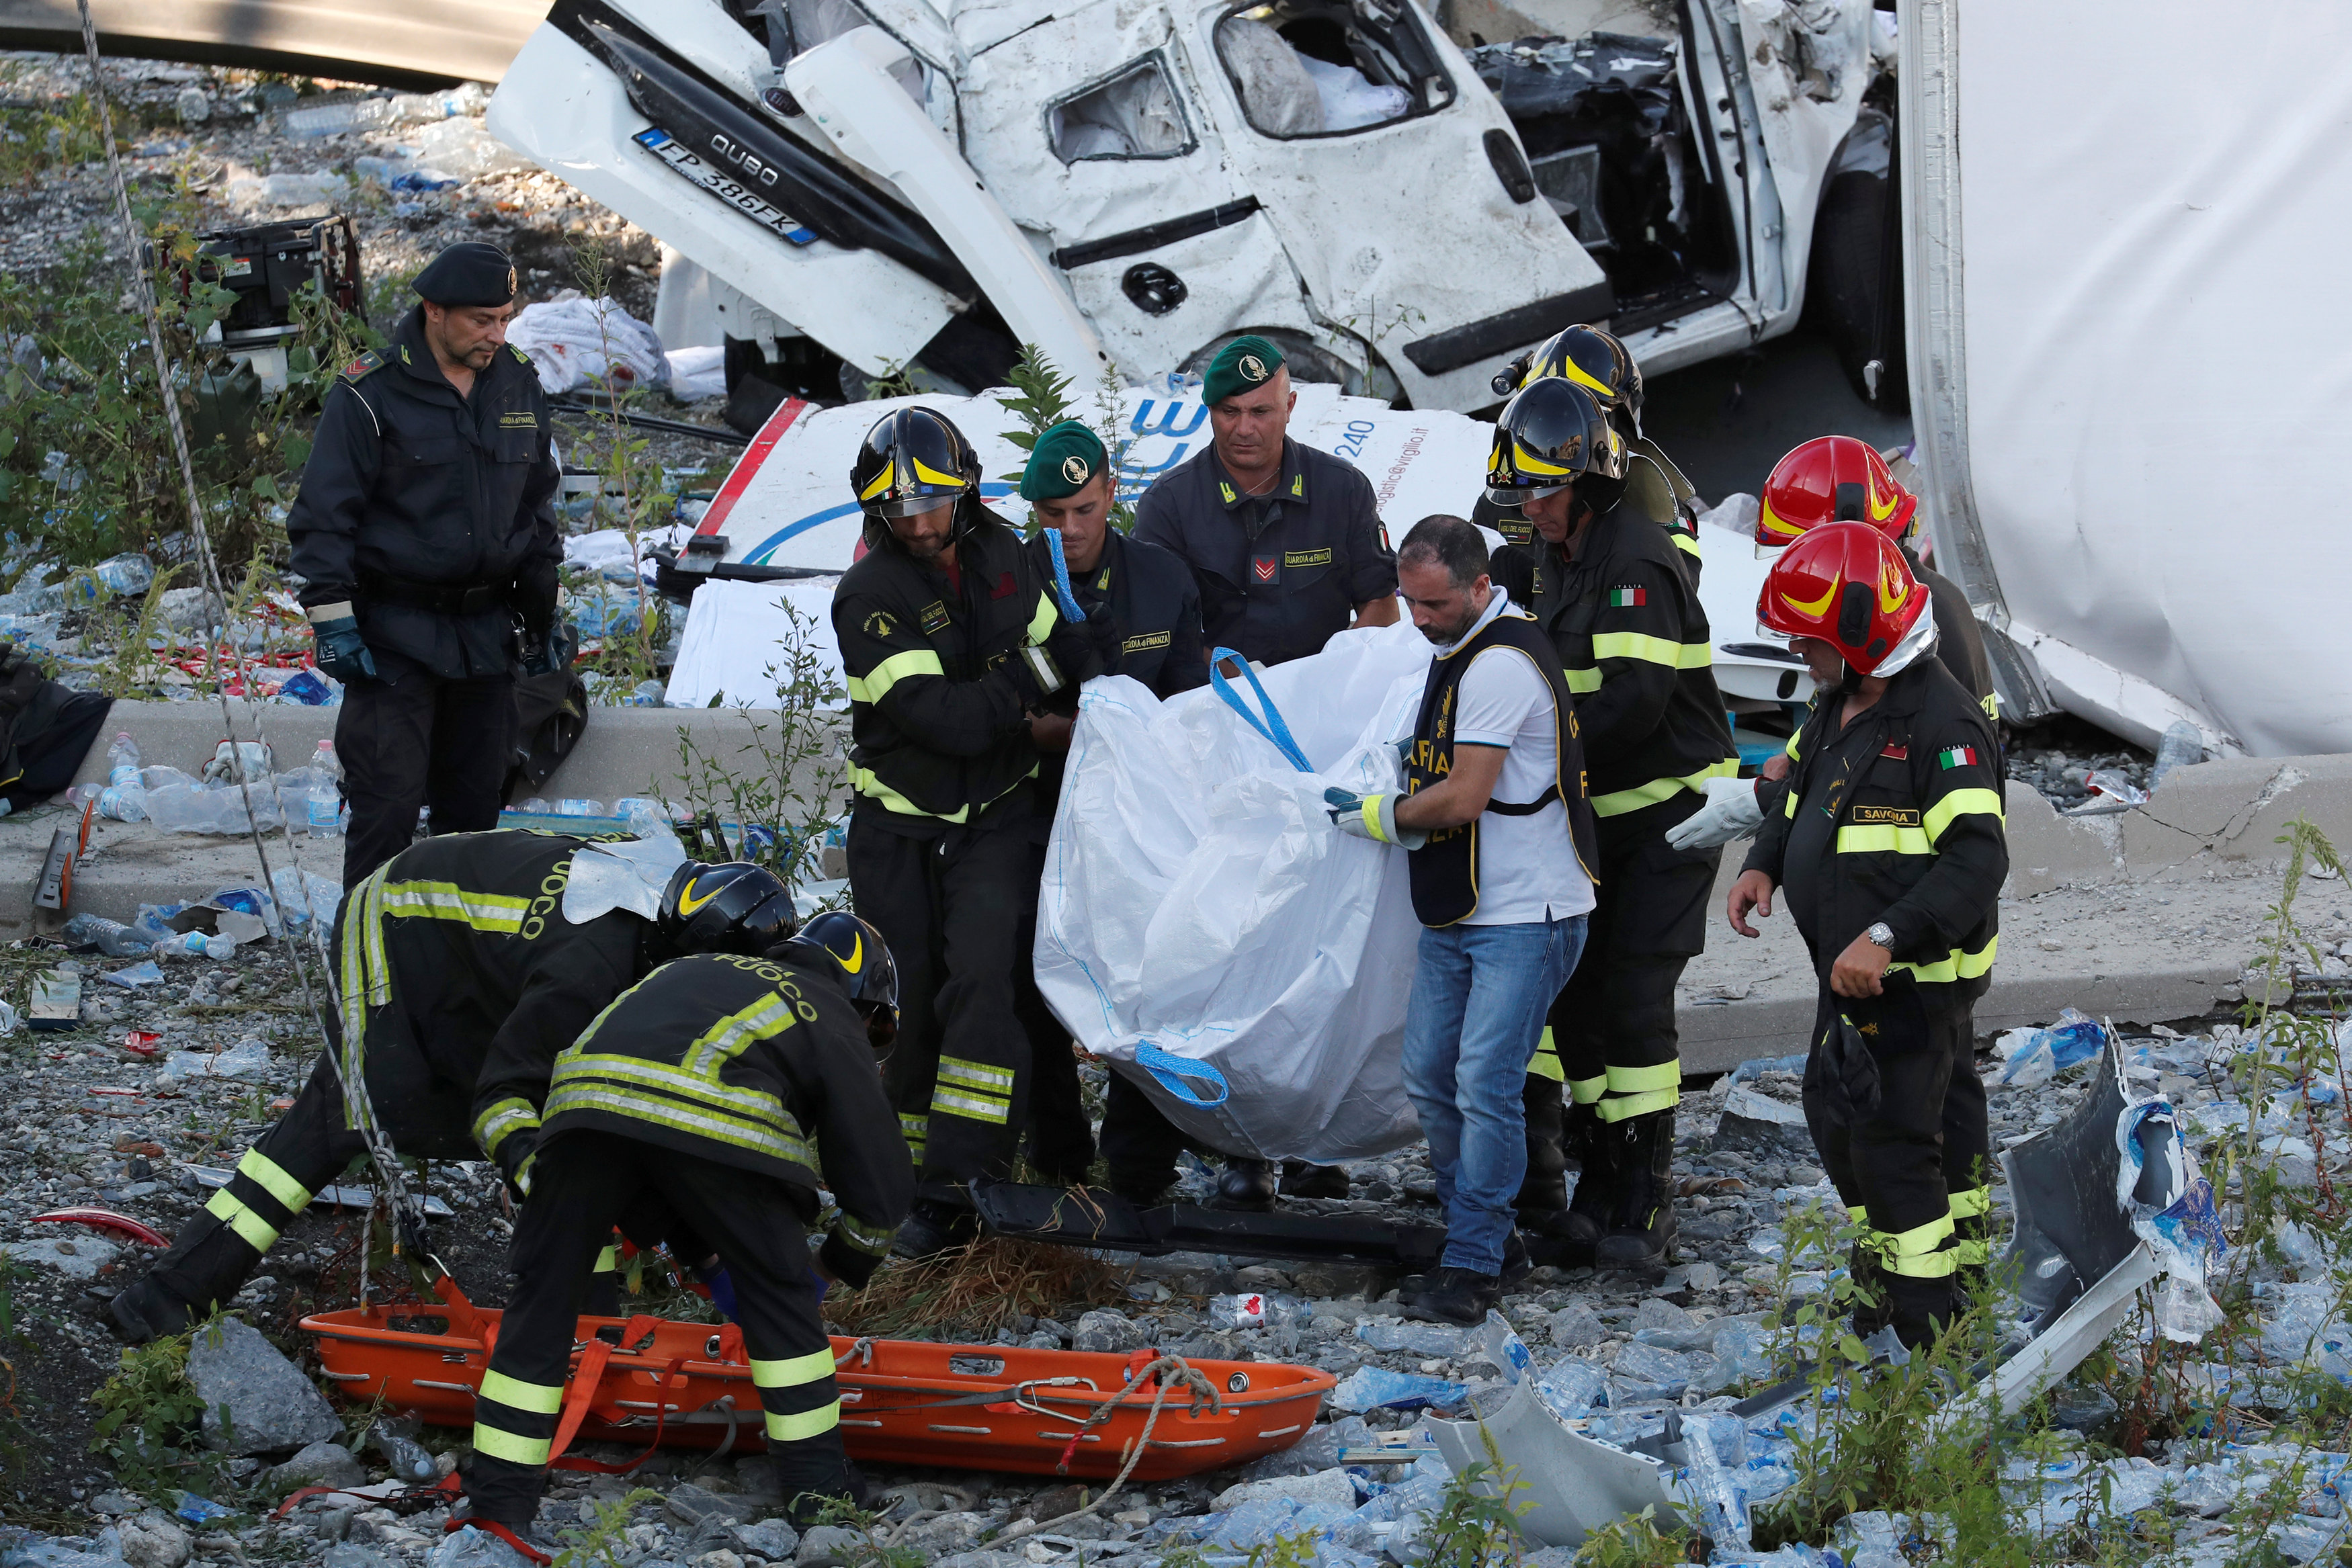 Firefighters carry body at collapsed Morandi Bridge site in Genoa